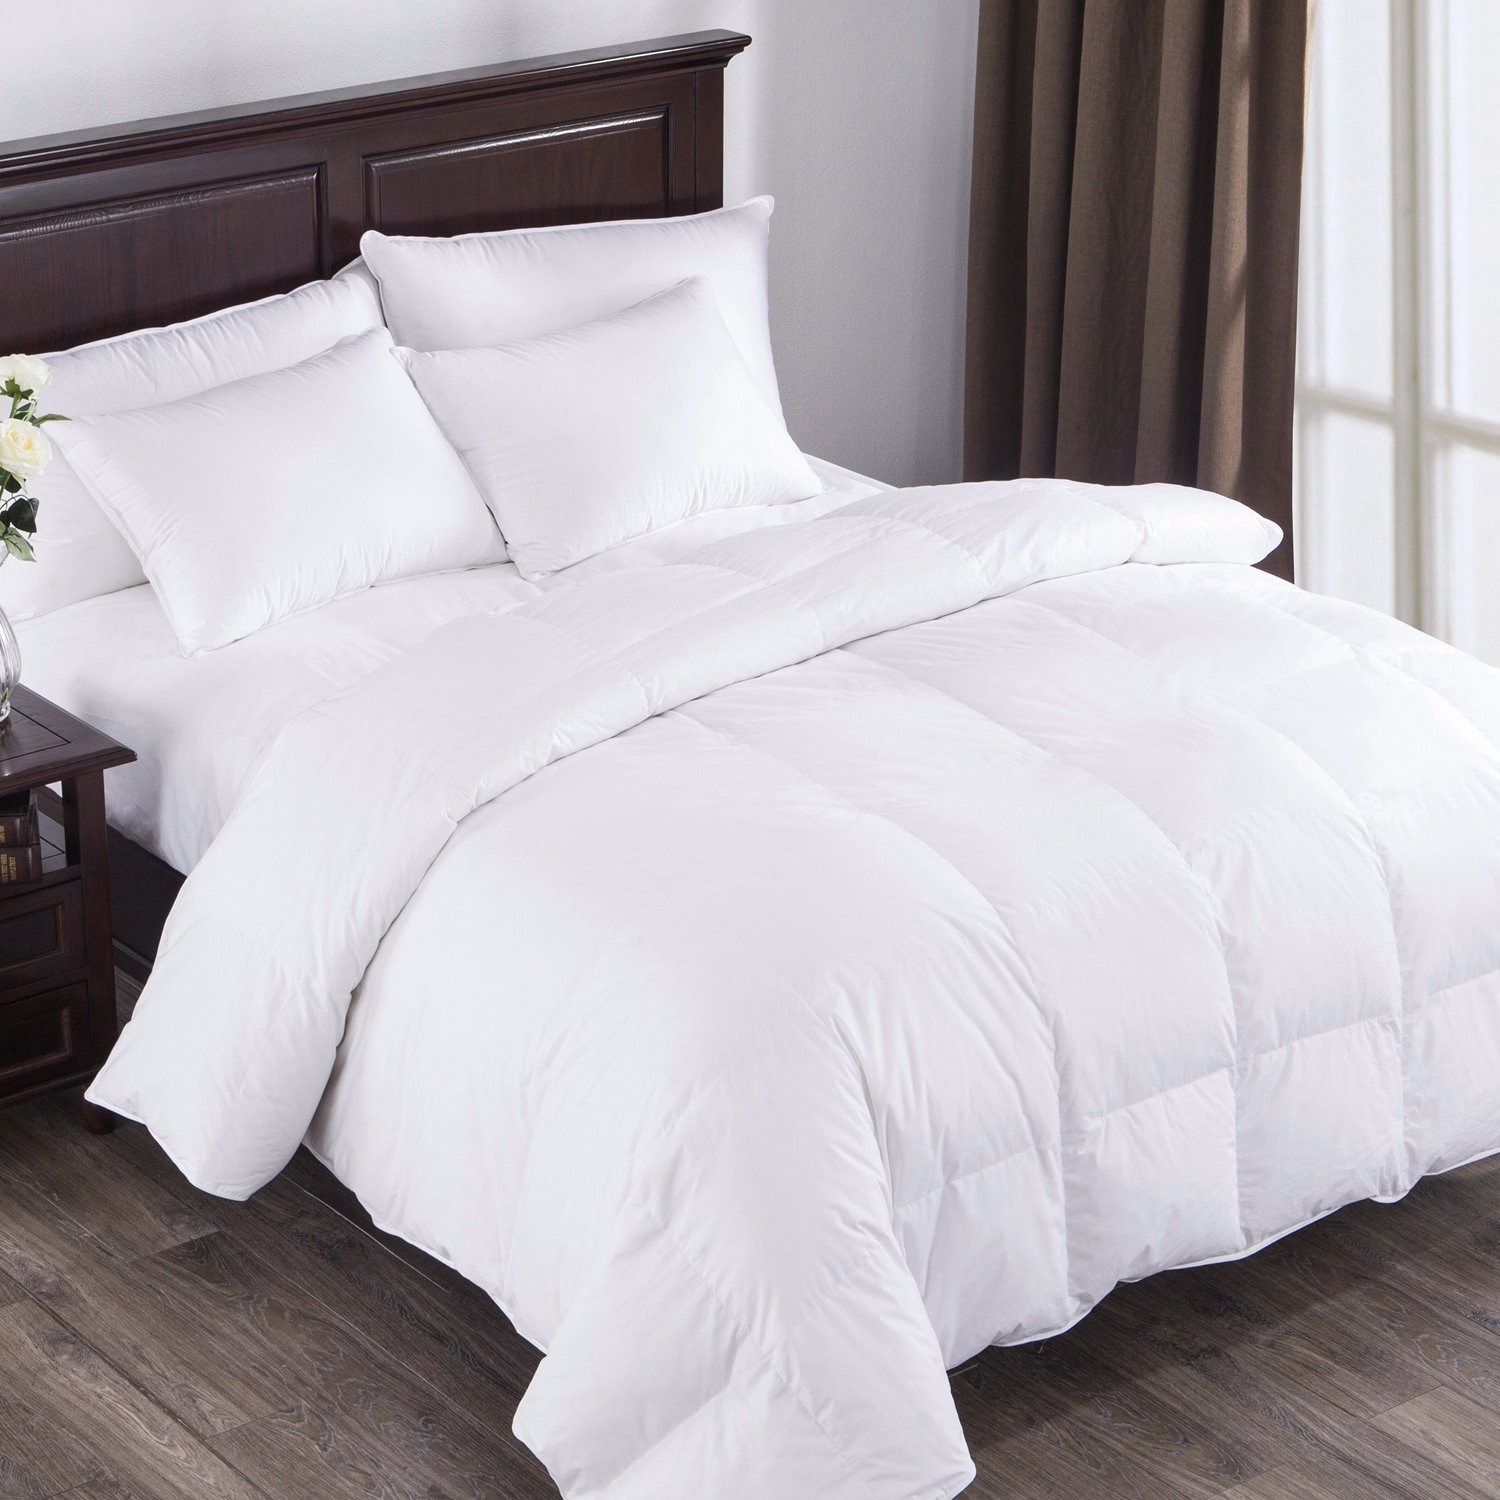 Puredown Cotton 600 Fill Power 104 x 88 inch Comforter, King, White